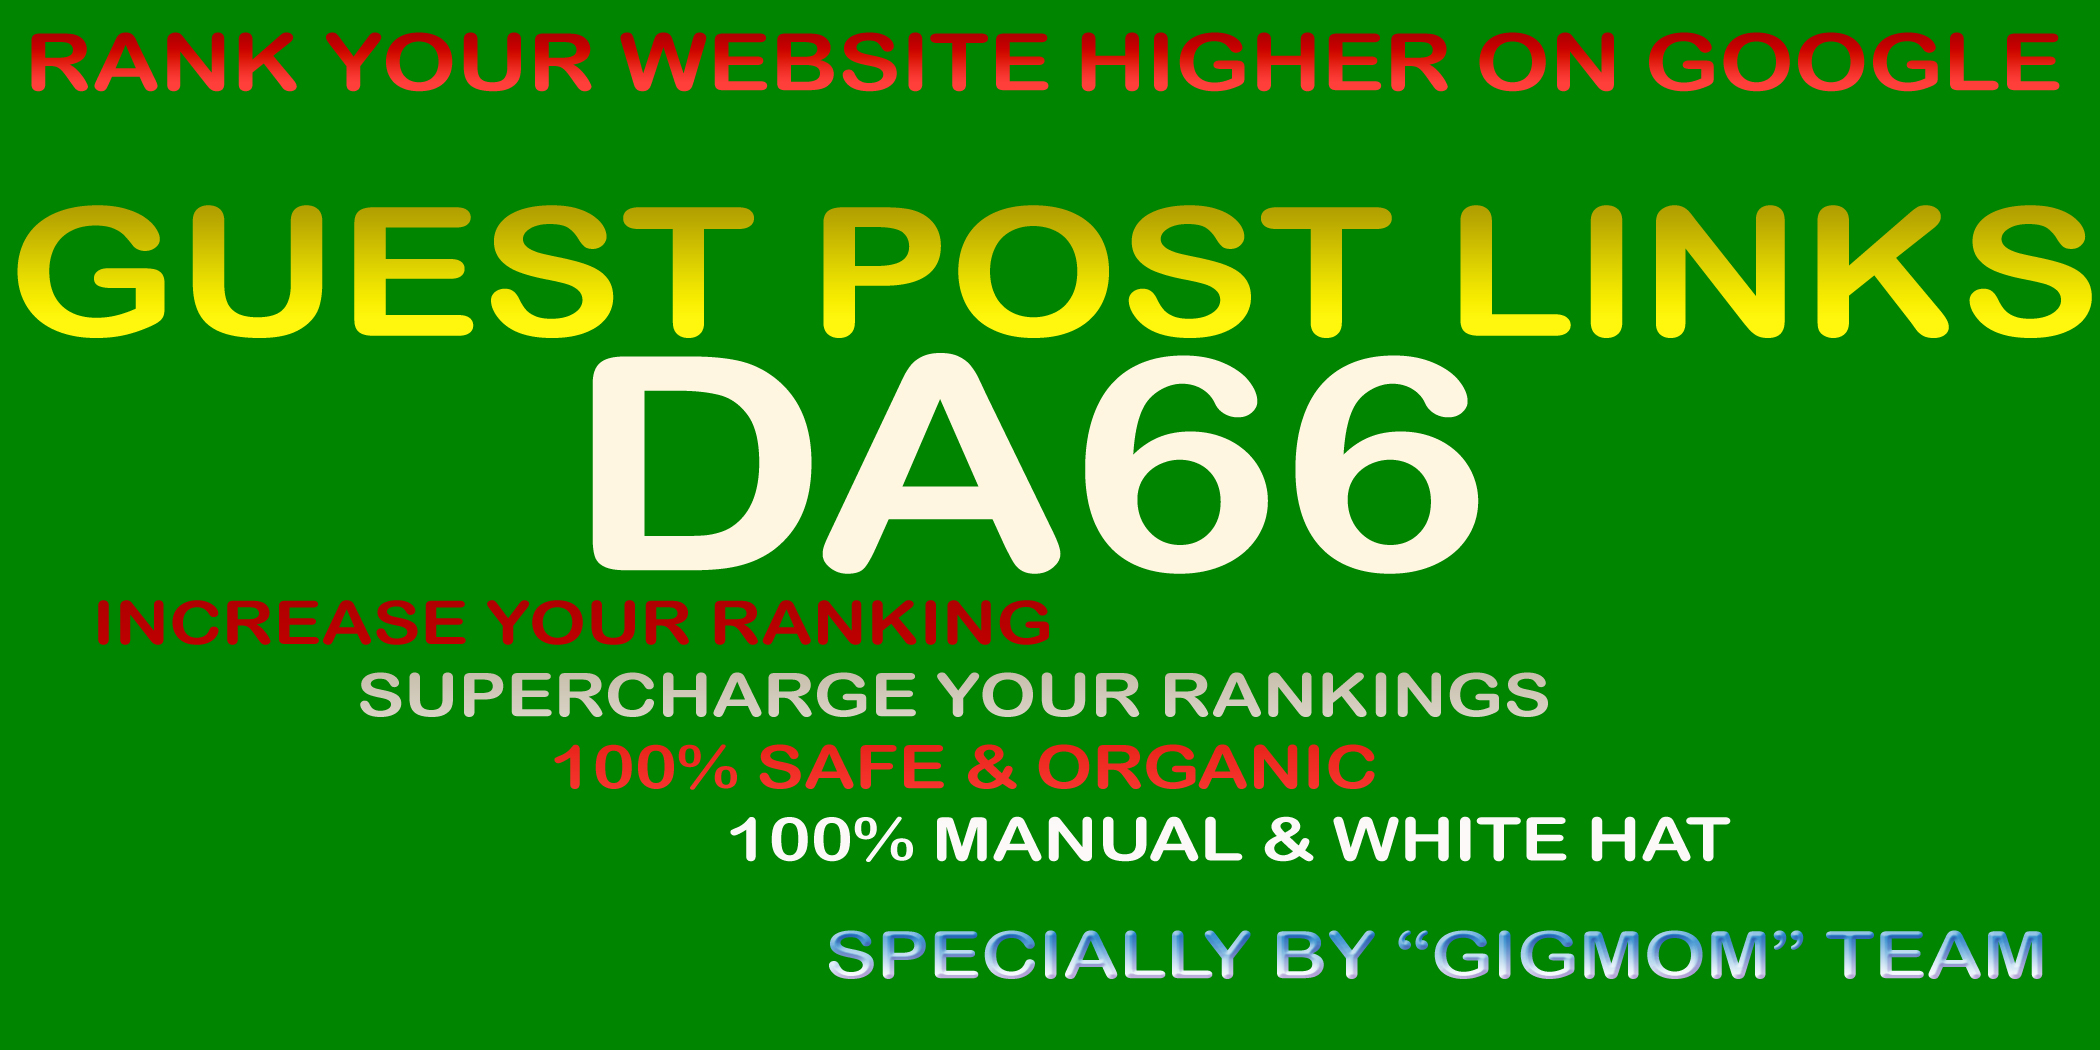 5 Dofollow Guest Post Links DA66 High Visitor Blogs to Rank Higher